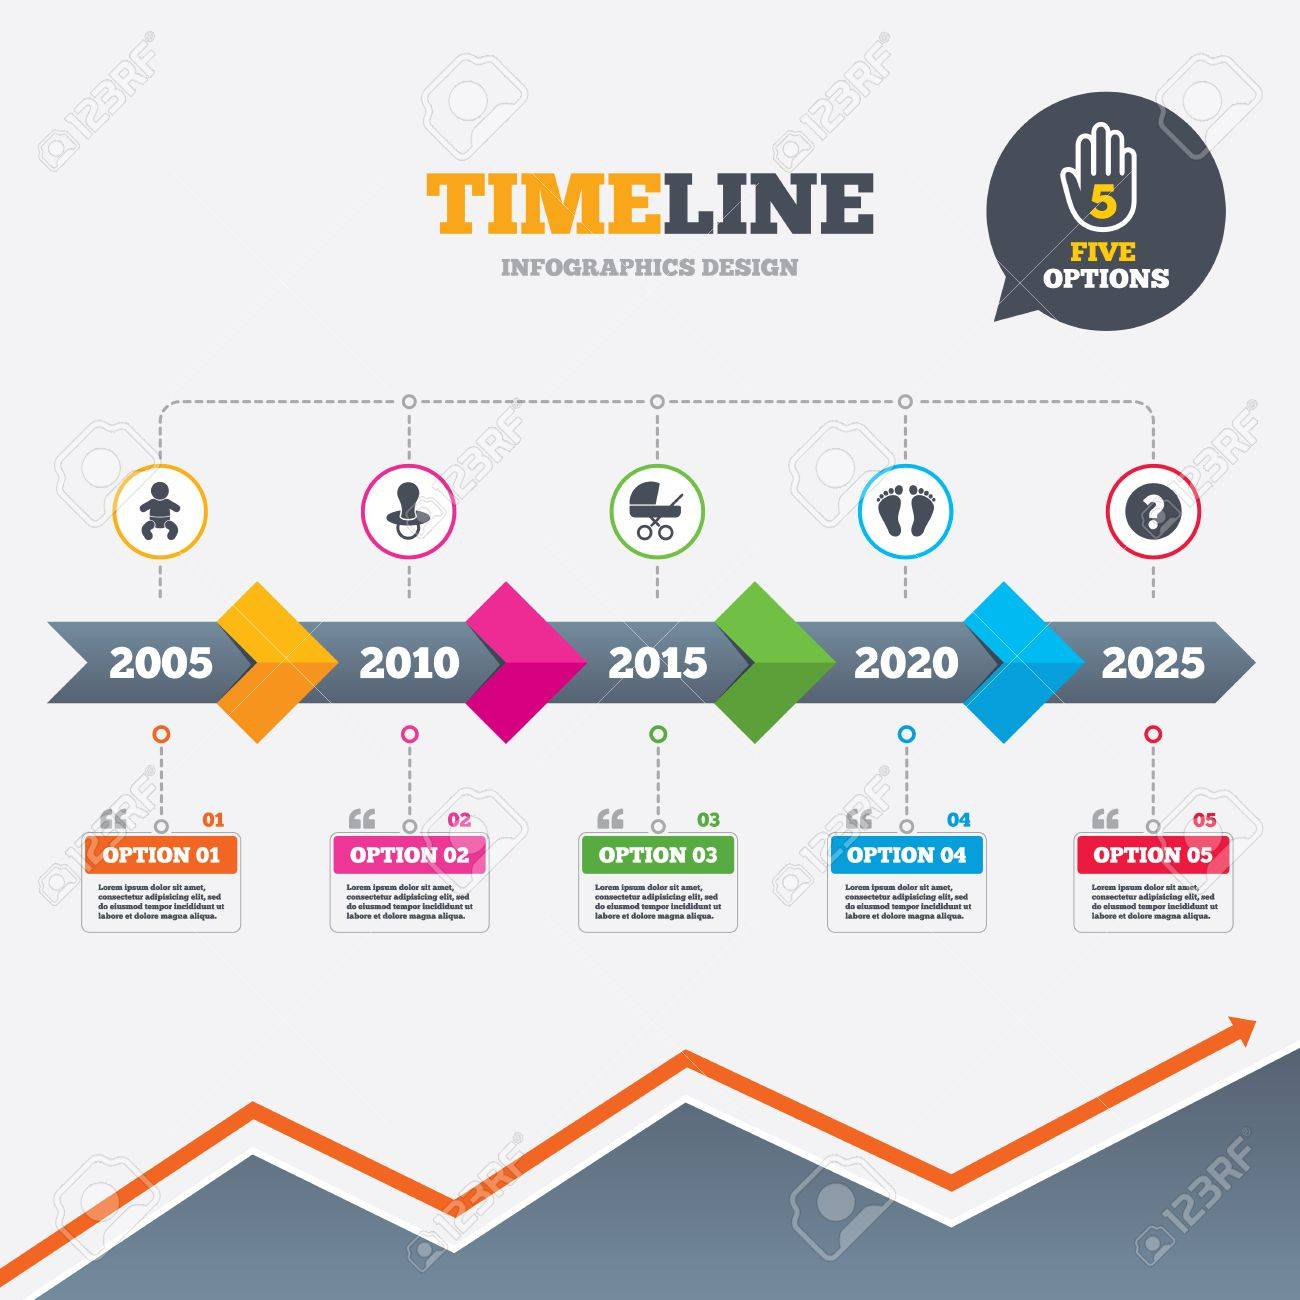 Timeline infographic with arrows baby infants icons toddler boy toddler boy with diapers symbol buggy and dummy signs child pacifier and pram stroller child footprint step sign five options with hand growth chart ccuart Gallery